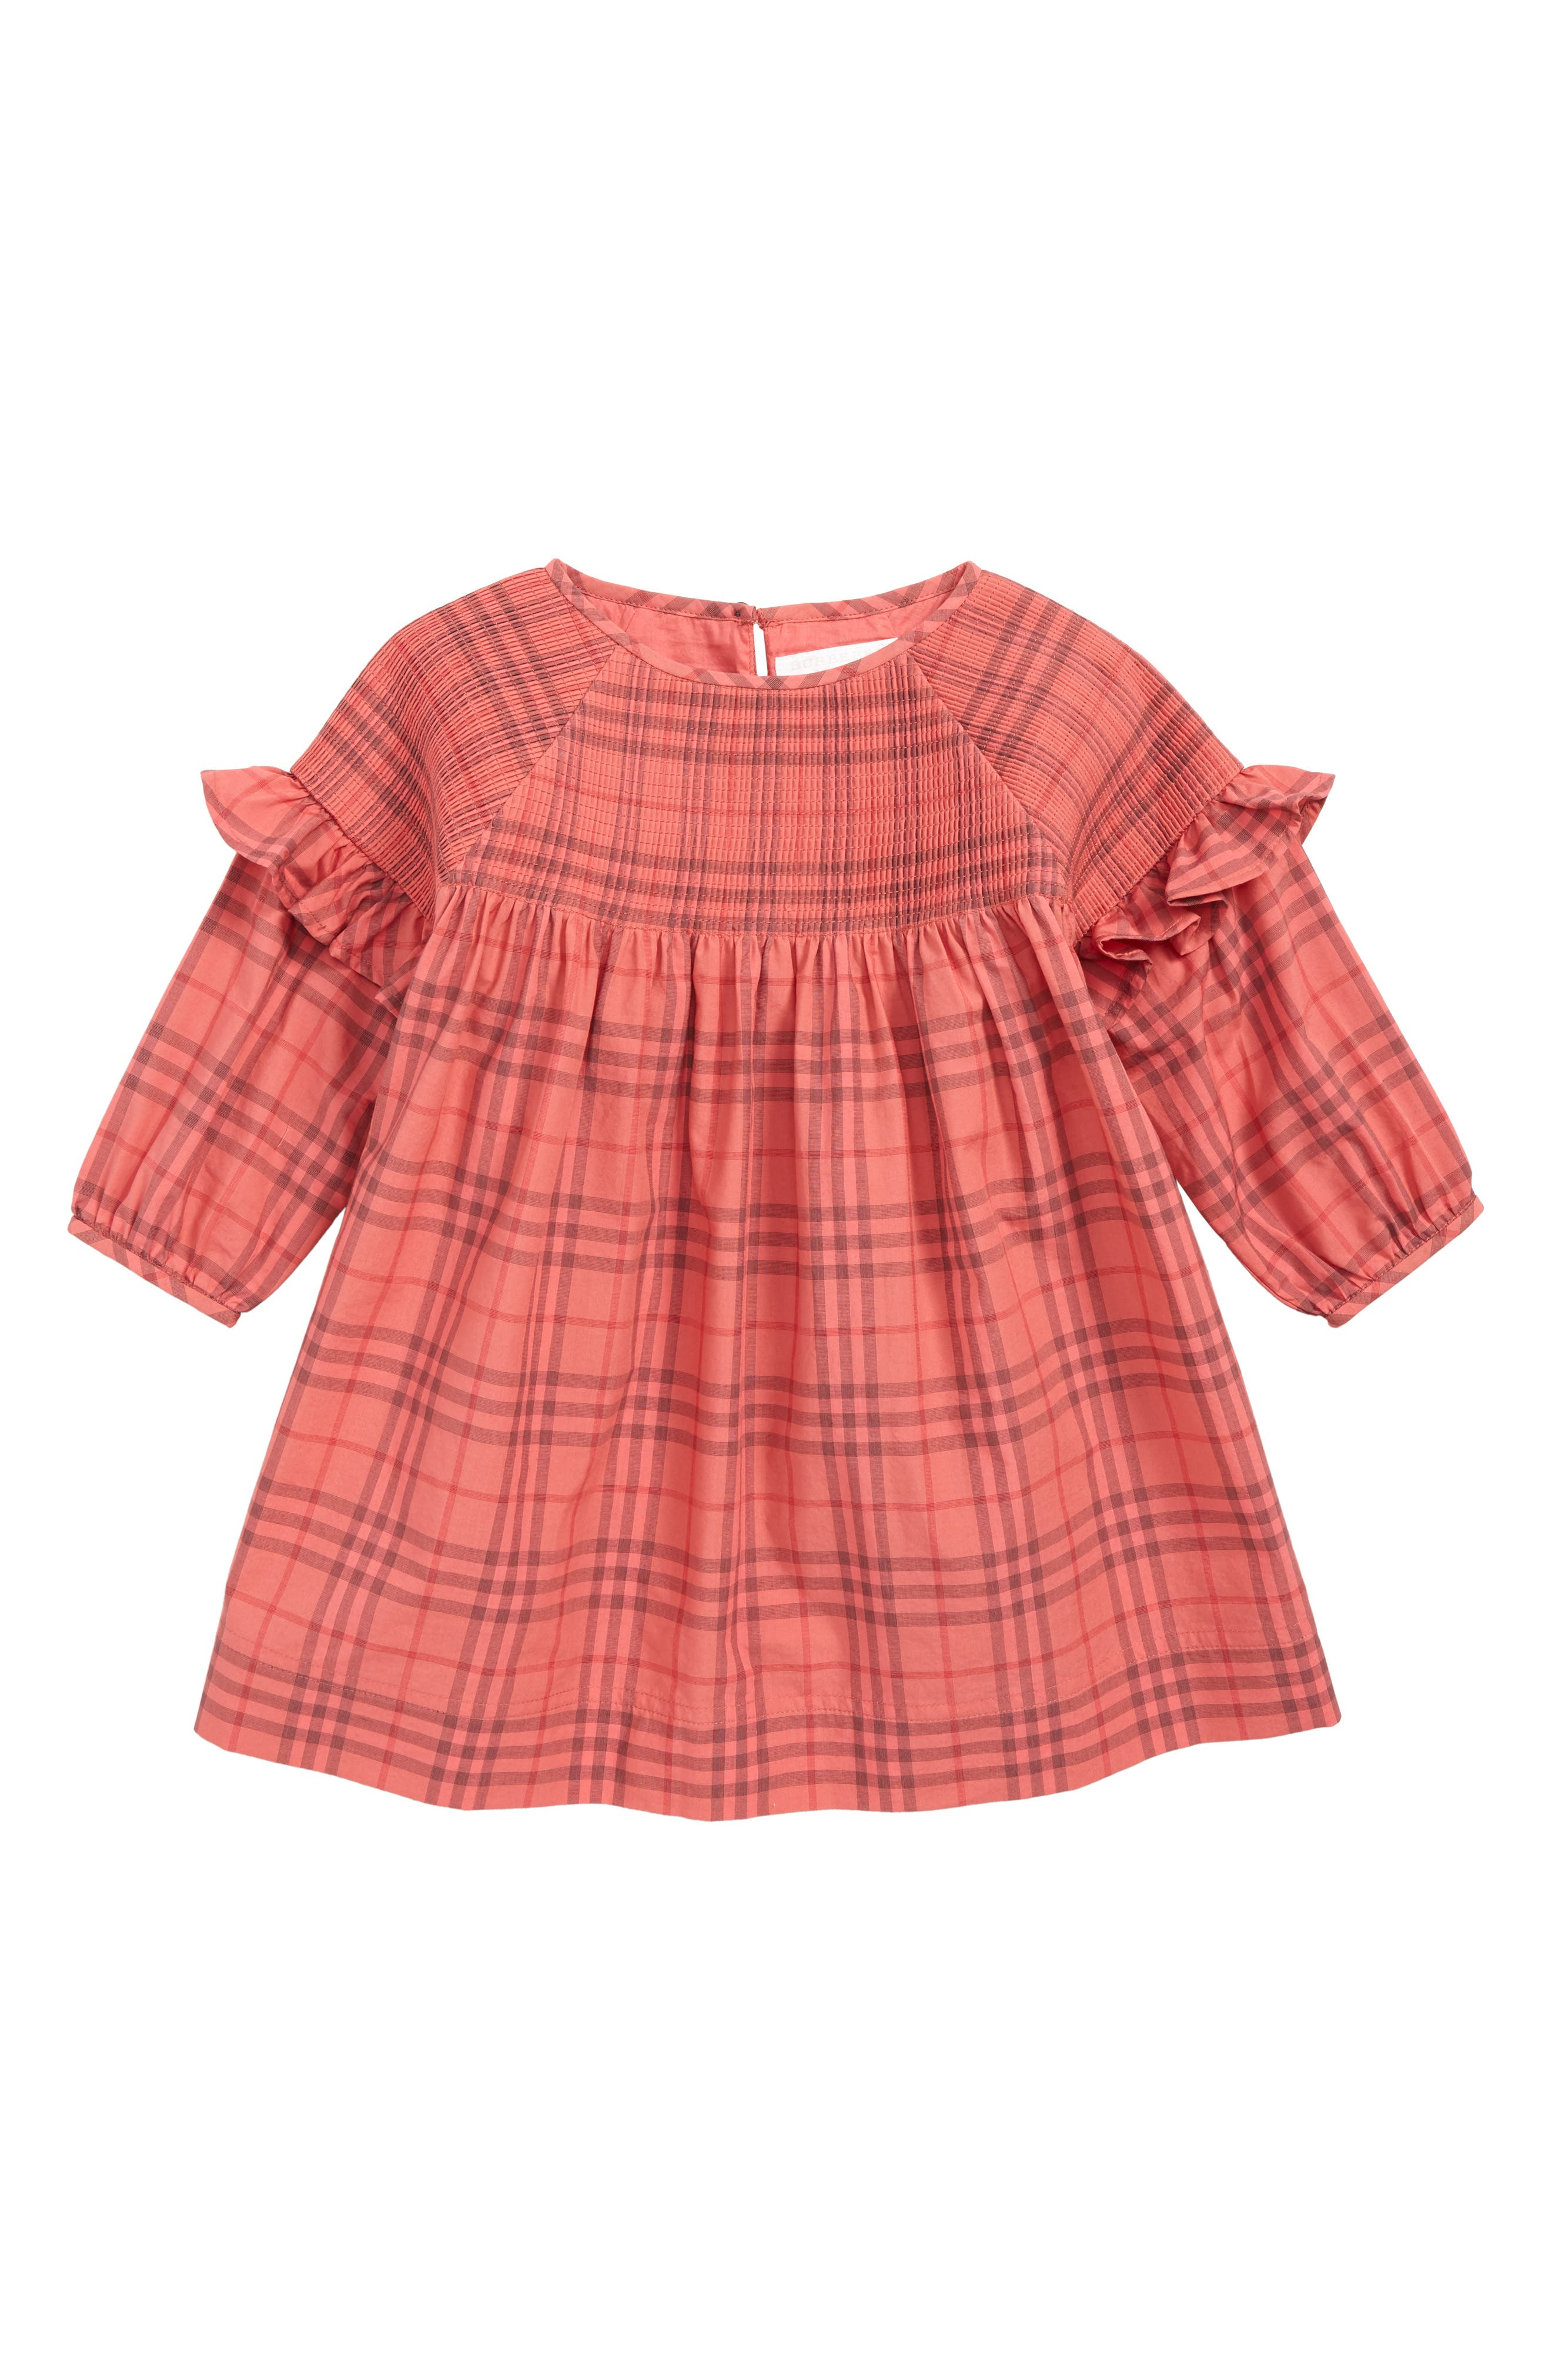 BURBERRY Mini Loralie Ruffle Detail Check Cotton Dress, Main, color, CORAL RED